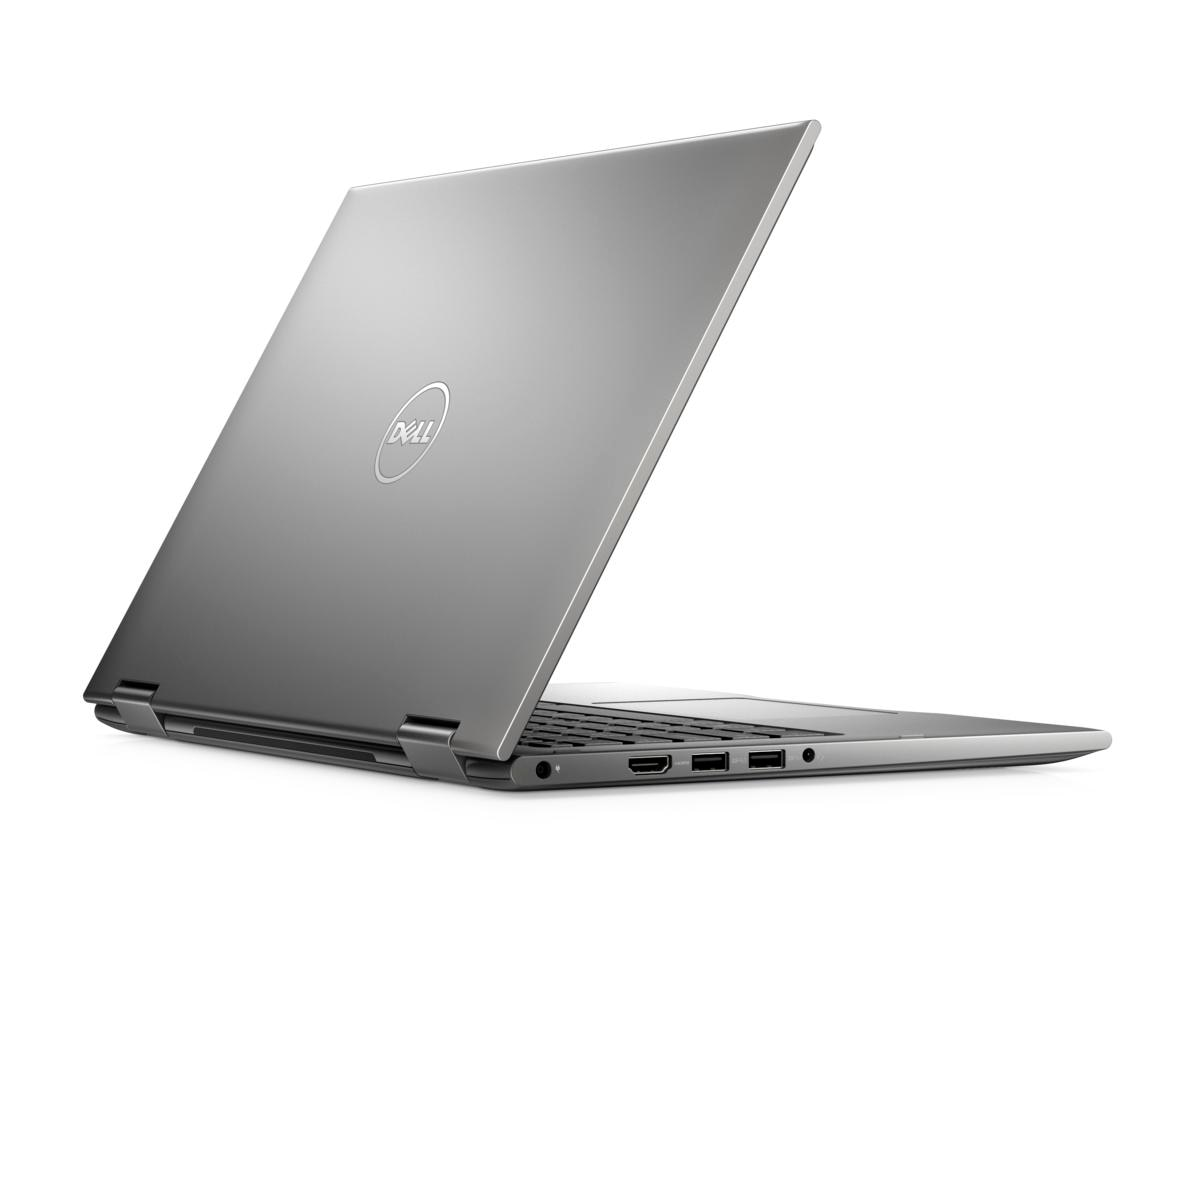 Dell Inspiron 13 5000 2-in-1- Intel i3-7100U - 1TB HDD- 4GB RAM- Windows 10 Home 3